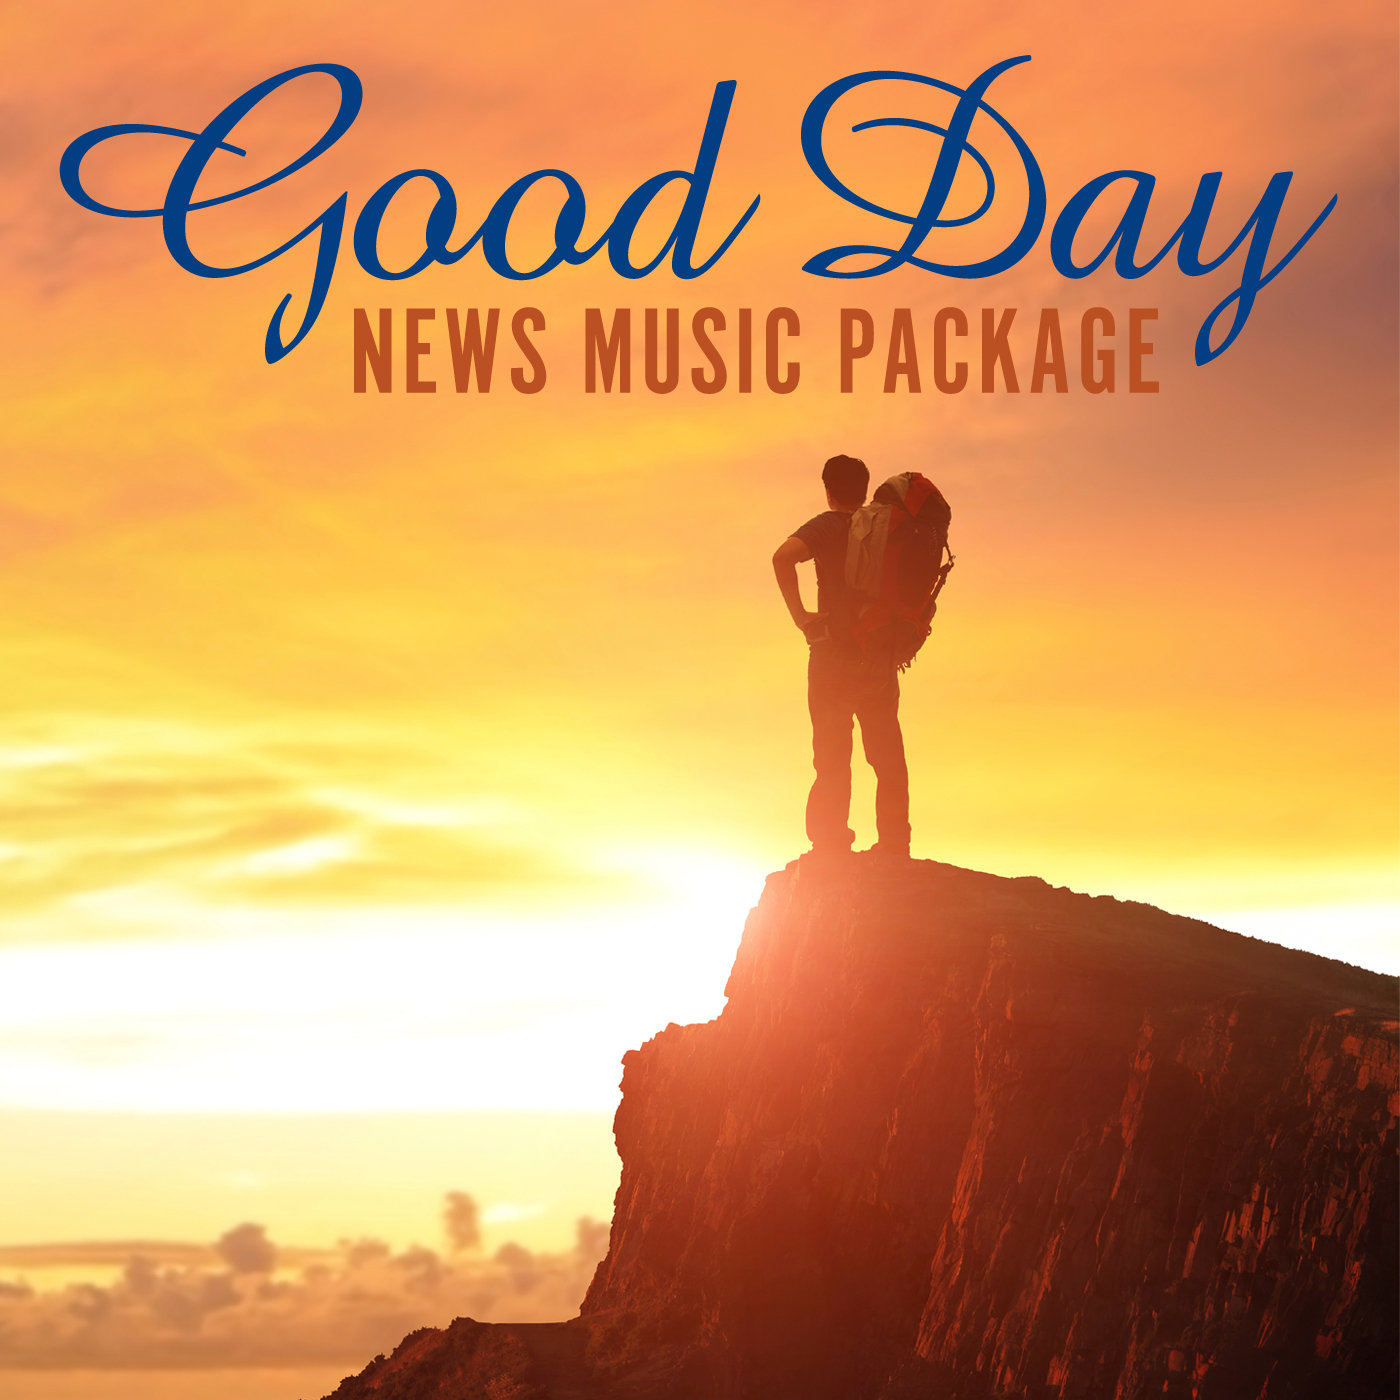 Good Day News Music Package